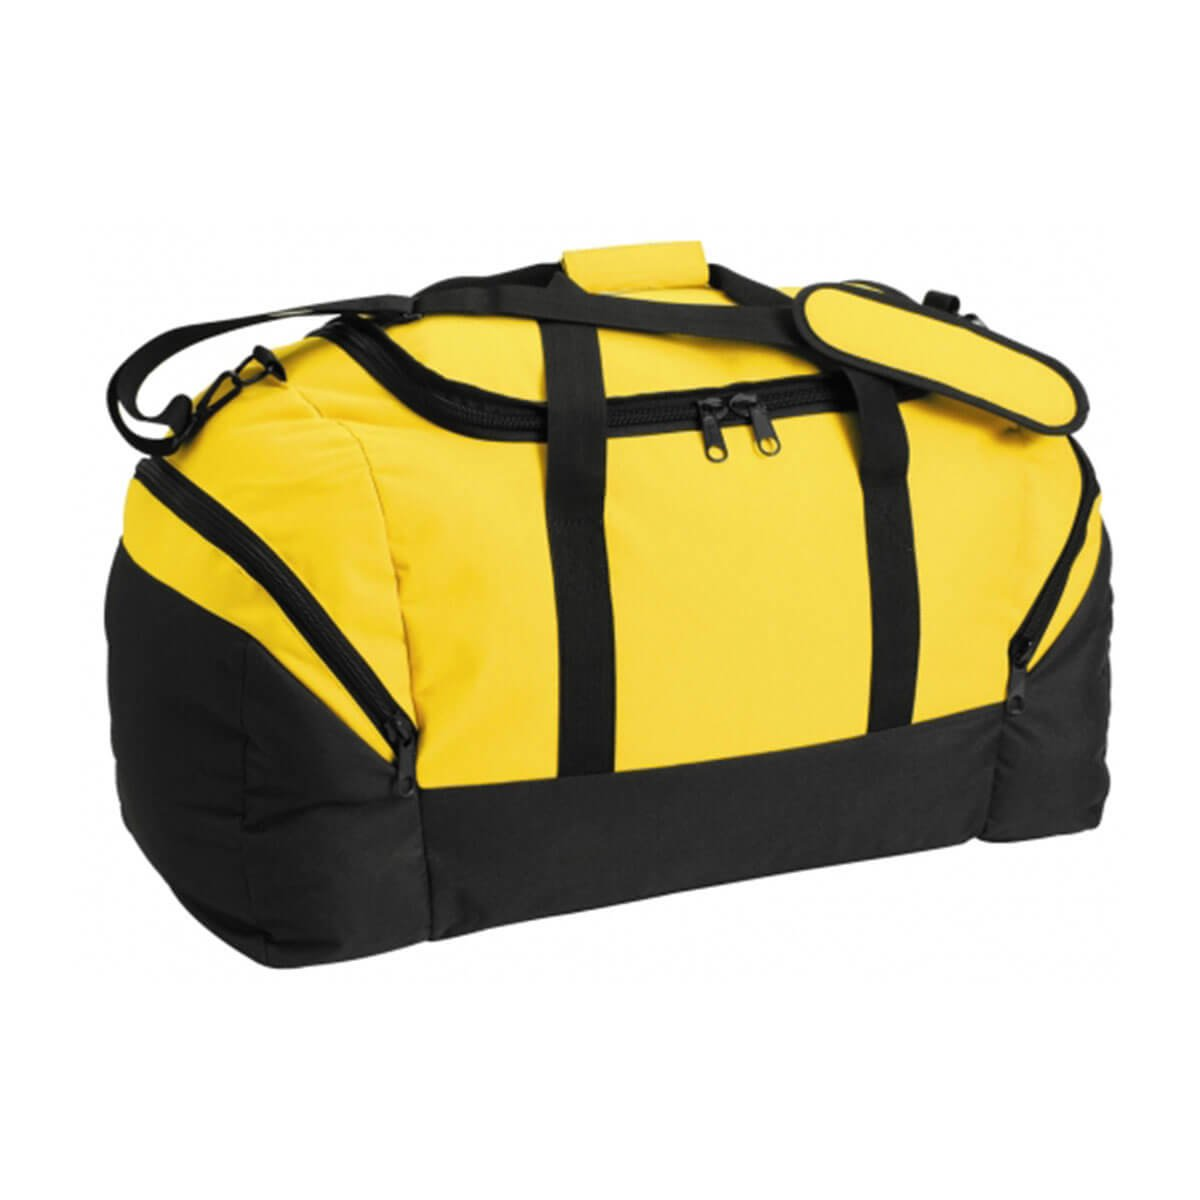 Team Sports Bag-Yellow / Black